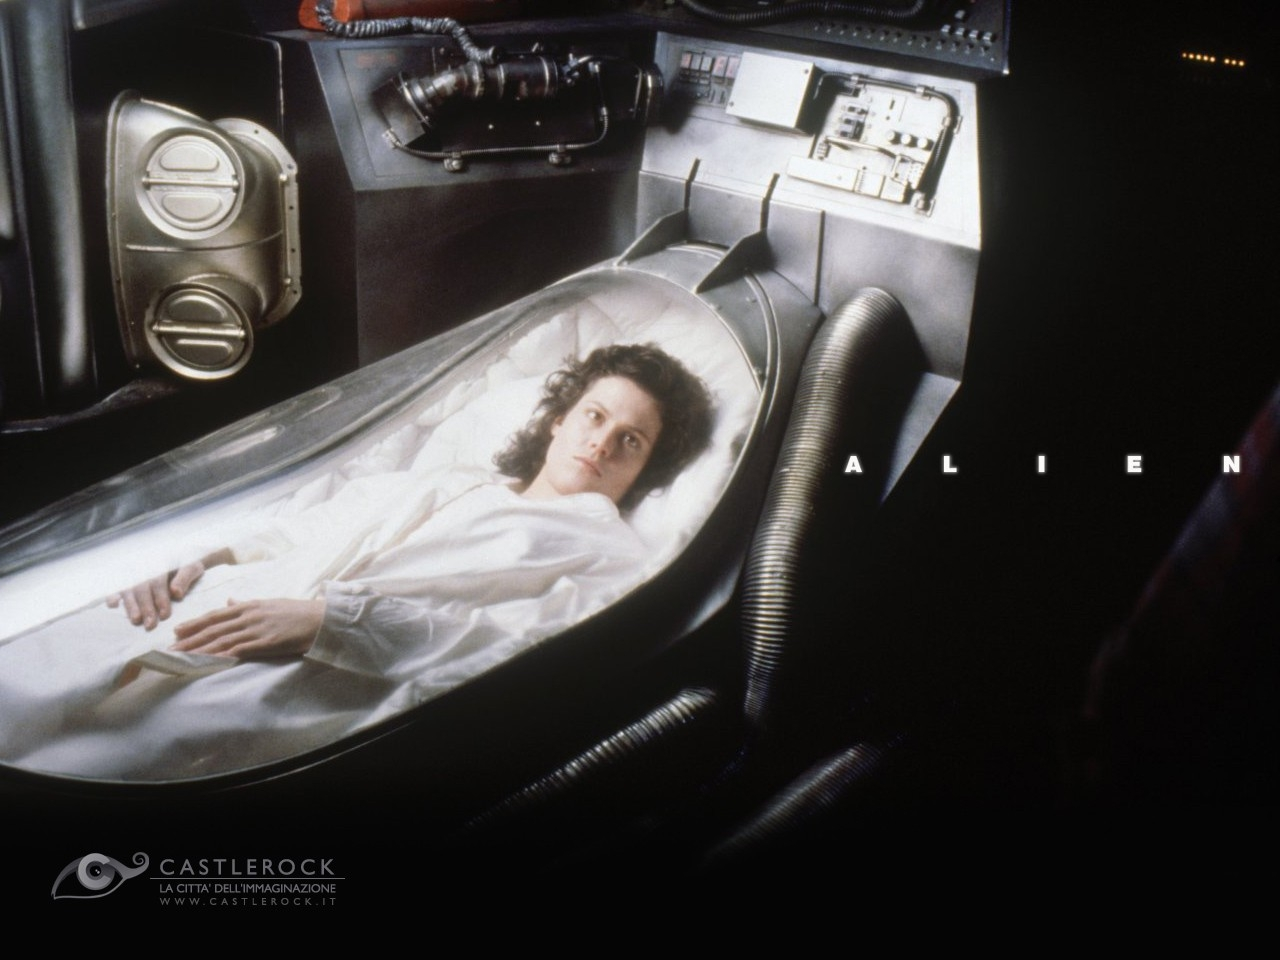 Wallpaper del film Alien